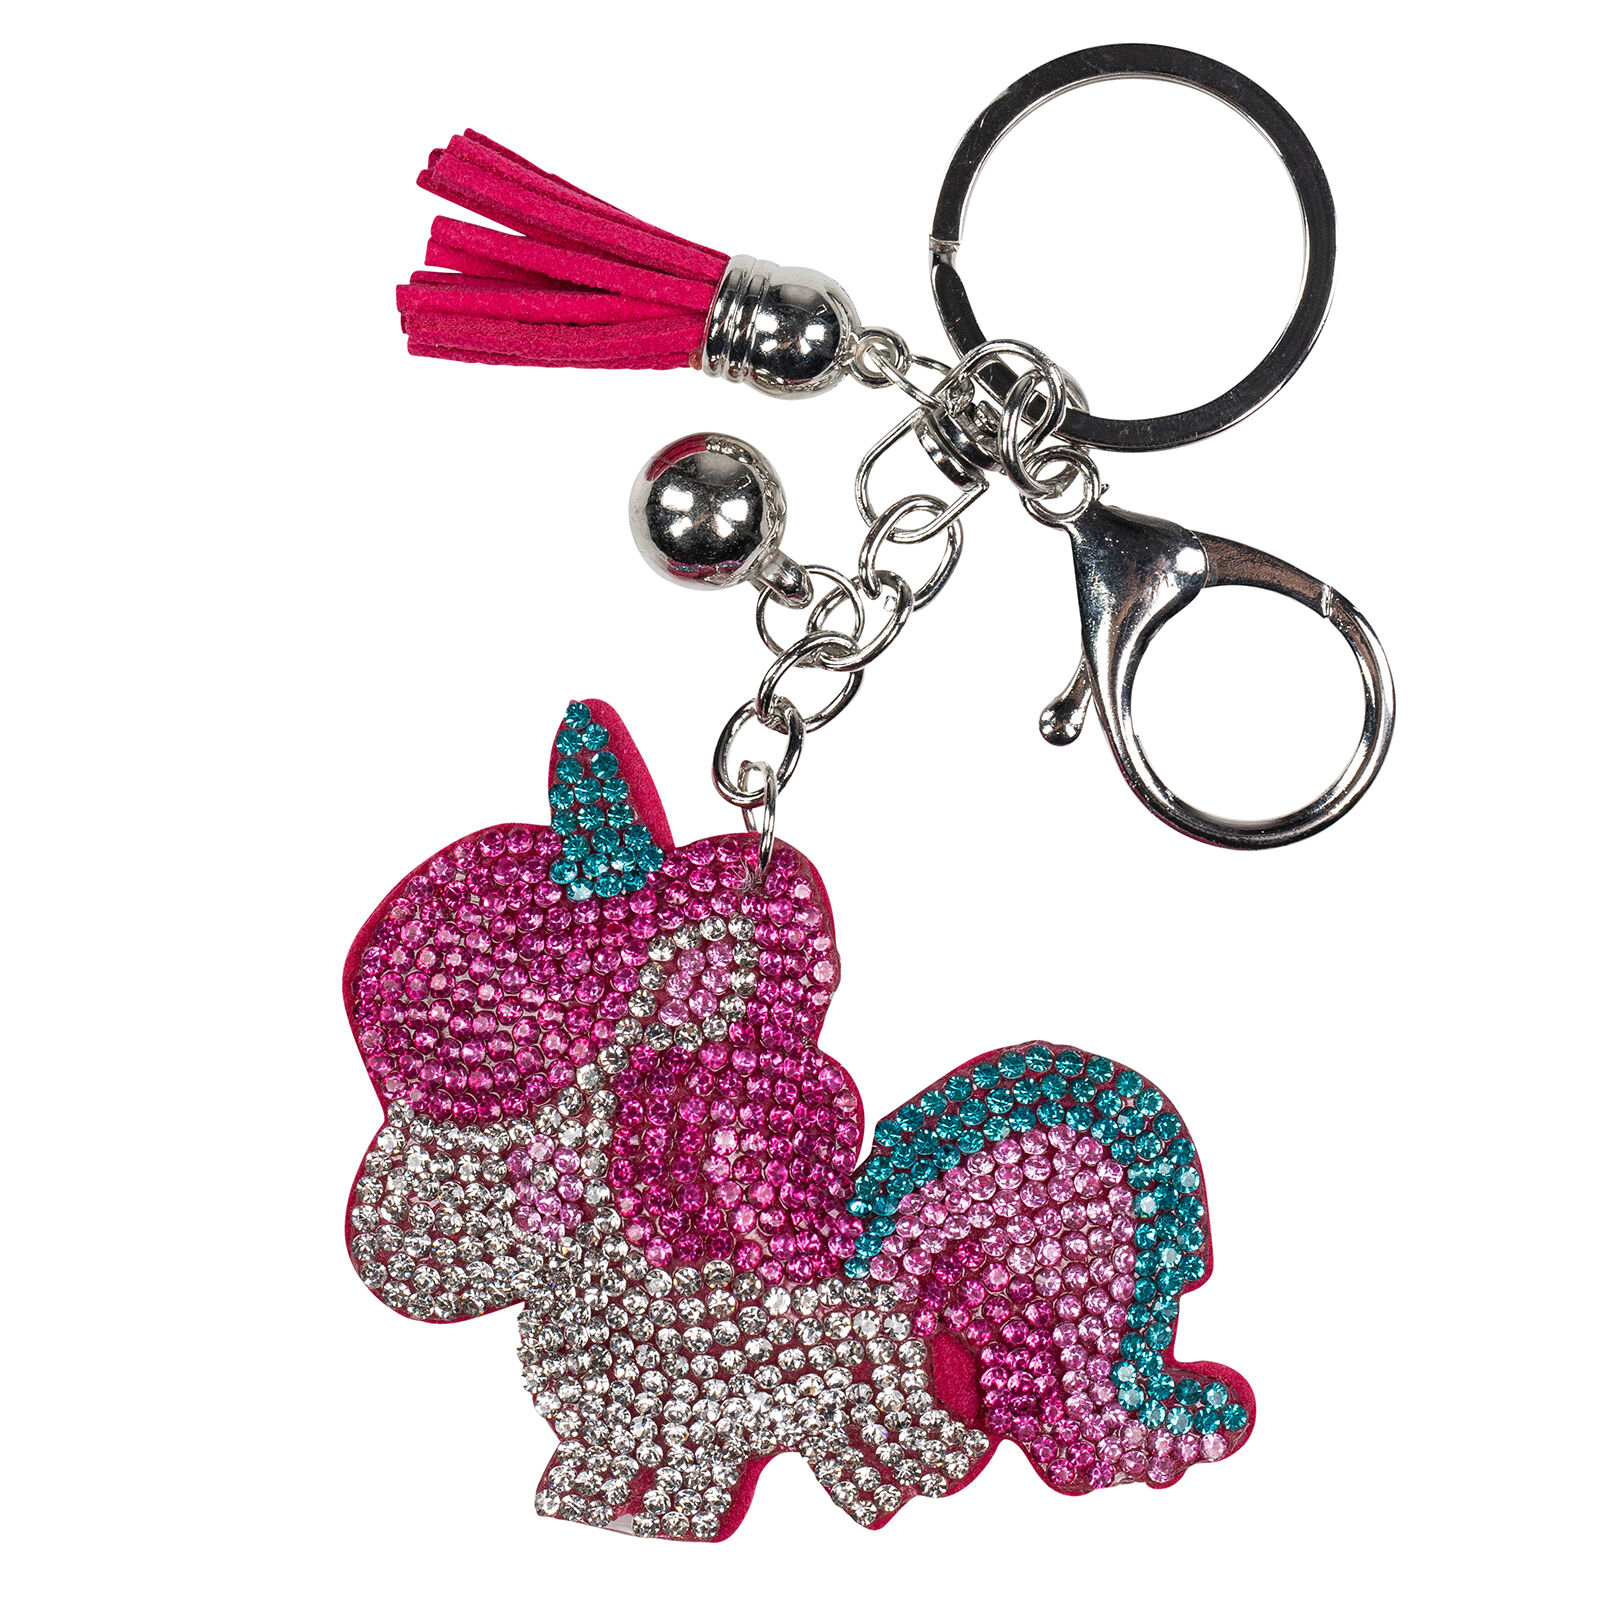 GORGEOUS SPARKLY HORSE SHOW NUMBER CLIPS MANY COLOUR OPTIONS ~ IDEAL GIFT!